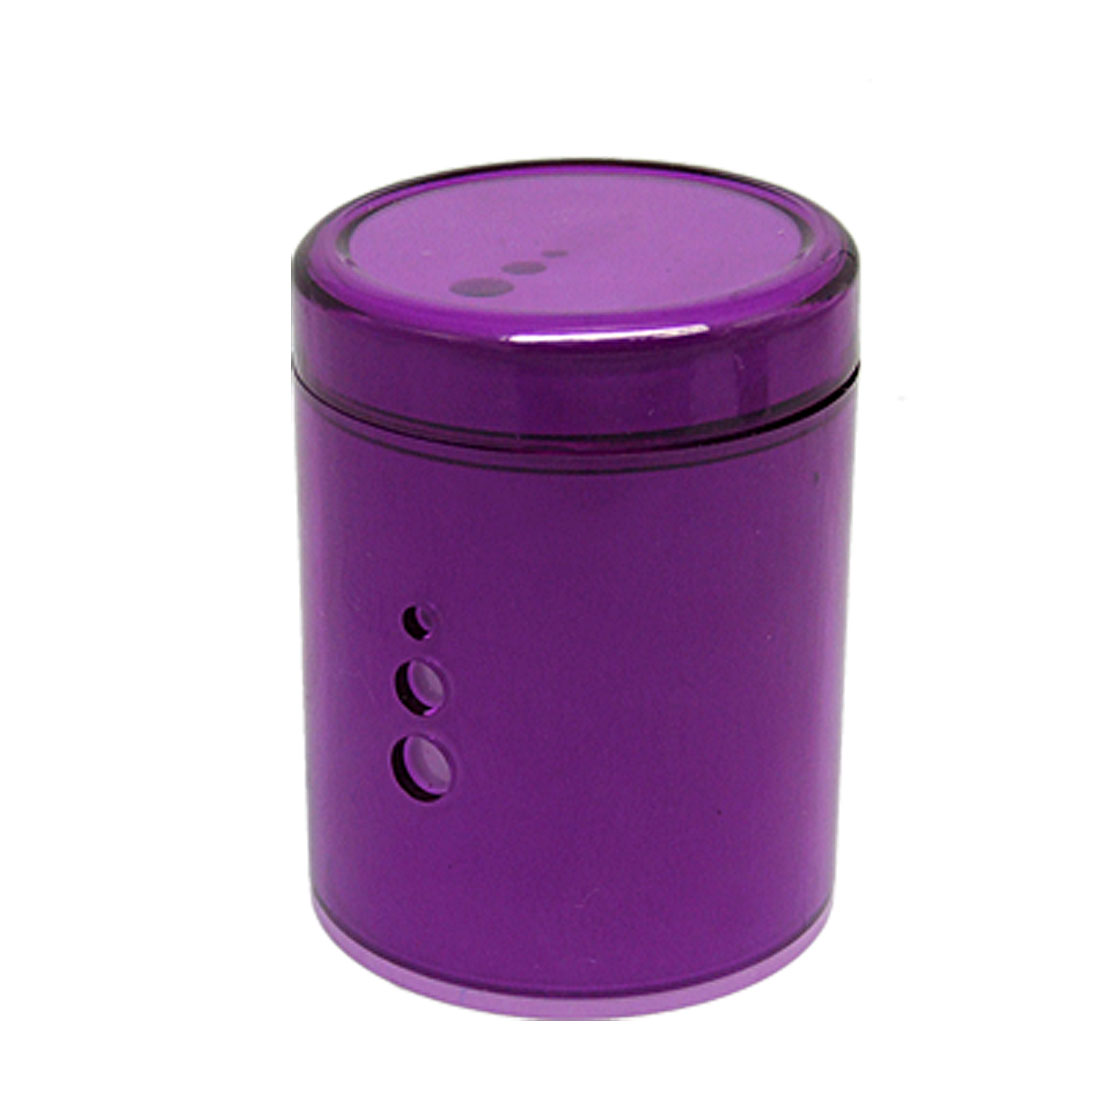 Blue LED Illuminated Plastic Cigarette Ashtray Purple